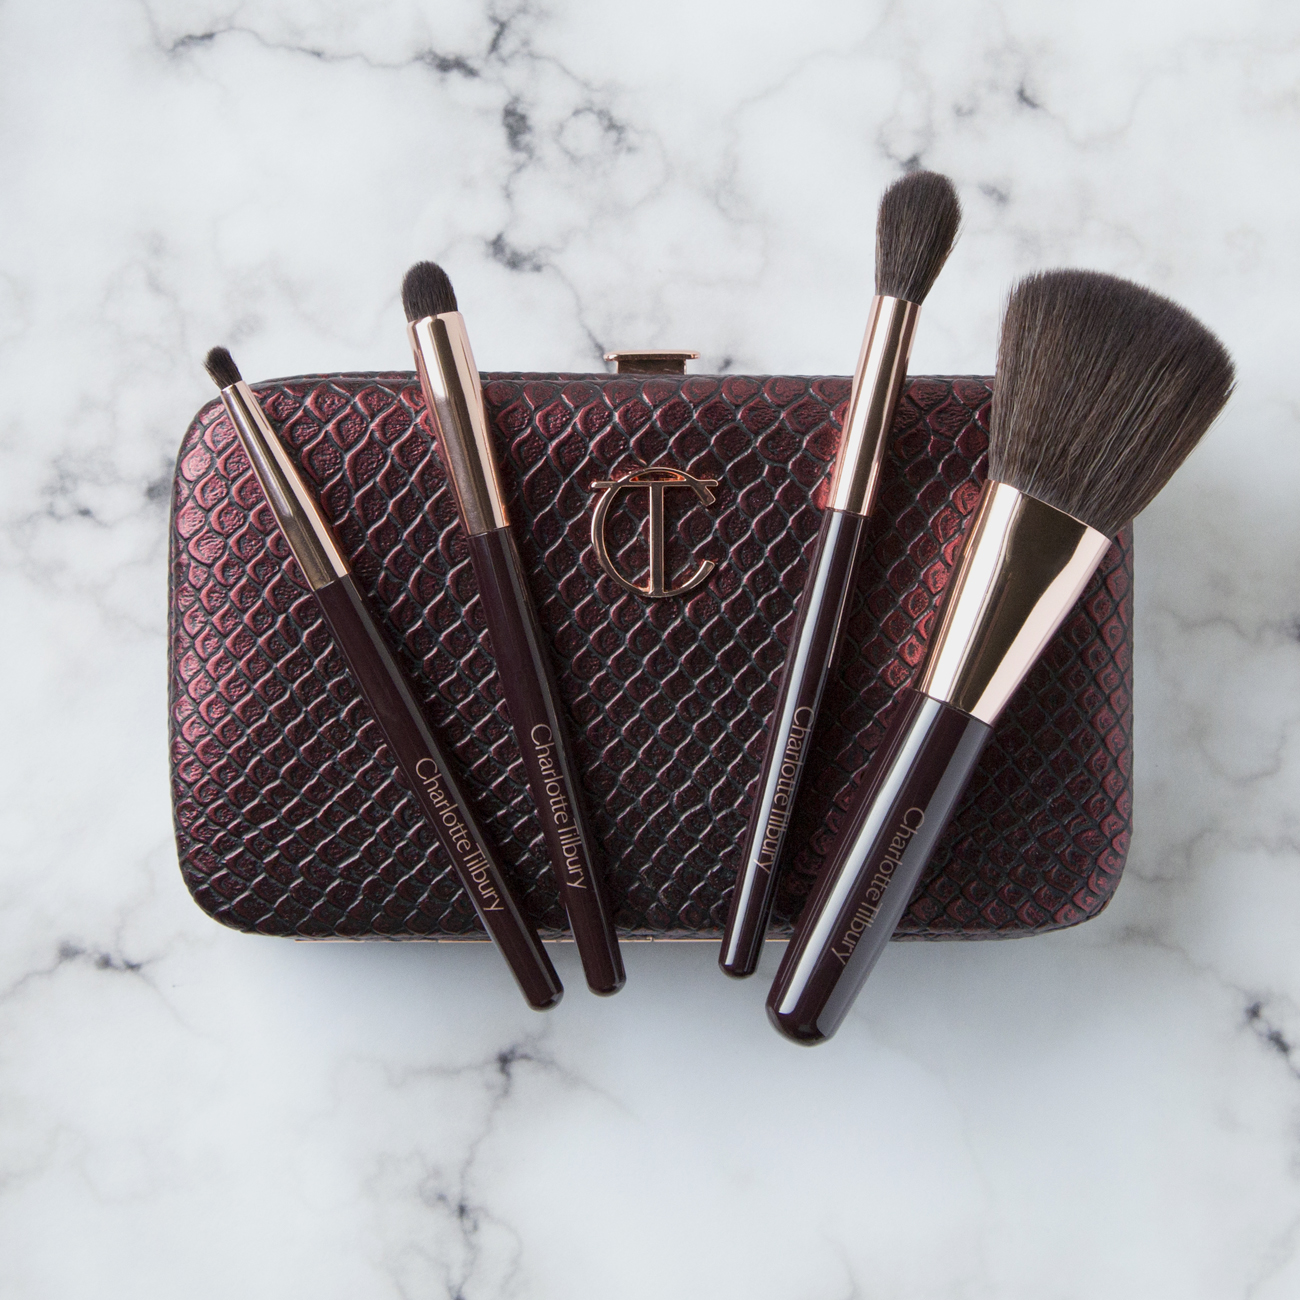 Charlotte Tilbury Magical Mini Brush Set   I've heard Charlotte's brushes are amazing and I really wanted to try them out but they're pretty darn expensive, $26-85 each. Enter Charlotte's Magical Mini Brush Set. The price was right and I liked the style of brushes so I went for it (this was another of my non-sale item purchases). In particular I liked the look of the two smaller brushes since I don't have that many options in smaller eye brush options and I'm so glad I got this because these are exactly what I needed! The travel case this came with makes it a great option for on-the-go touchups without having to dig around for brushes in your bag. I'm very happy wit these brushed and have used them every day I've worn makeup since I bought them. This brush set cost $65 which is way more easy to take compared to the $320 for her   Complete Brush Set   which contains eight full size brushes.